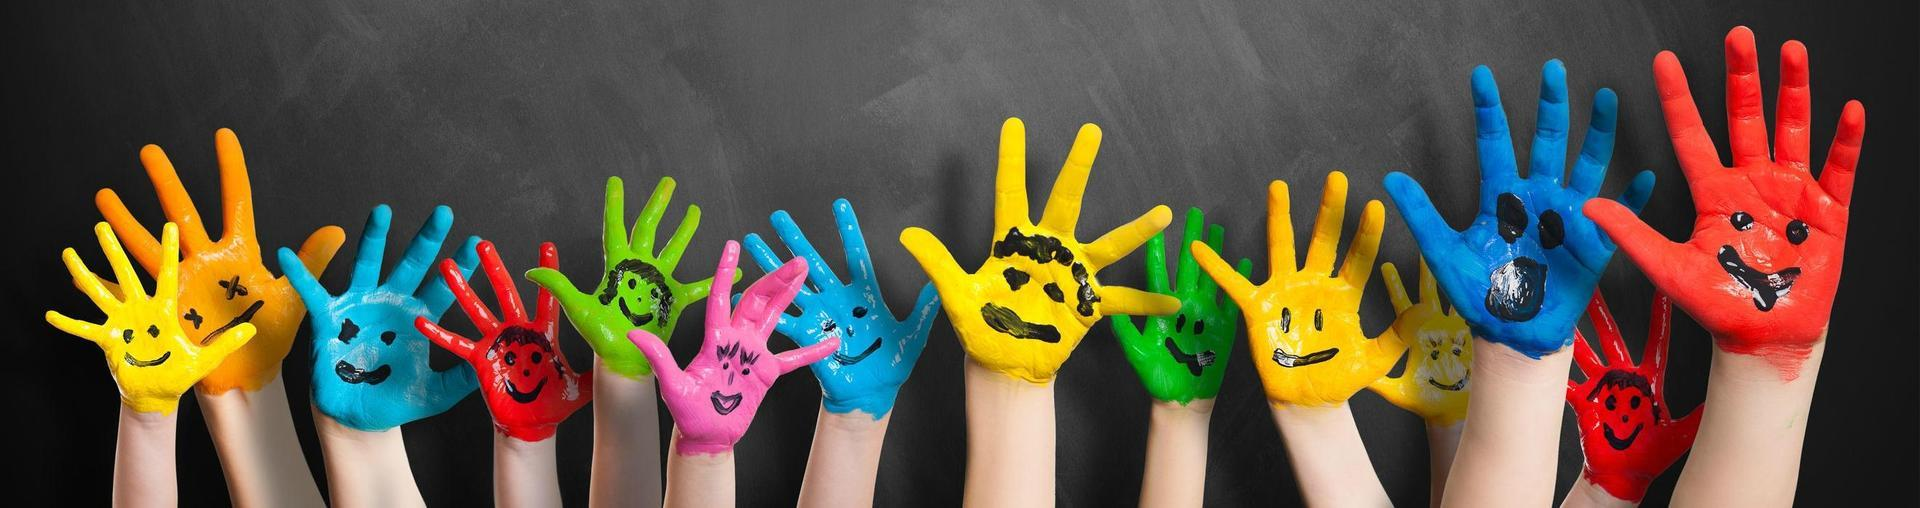 Happy Faces painted on hands.